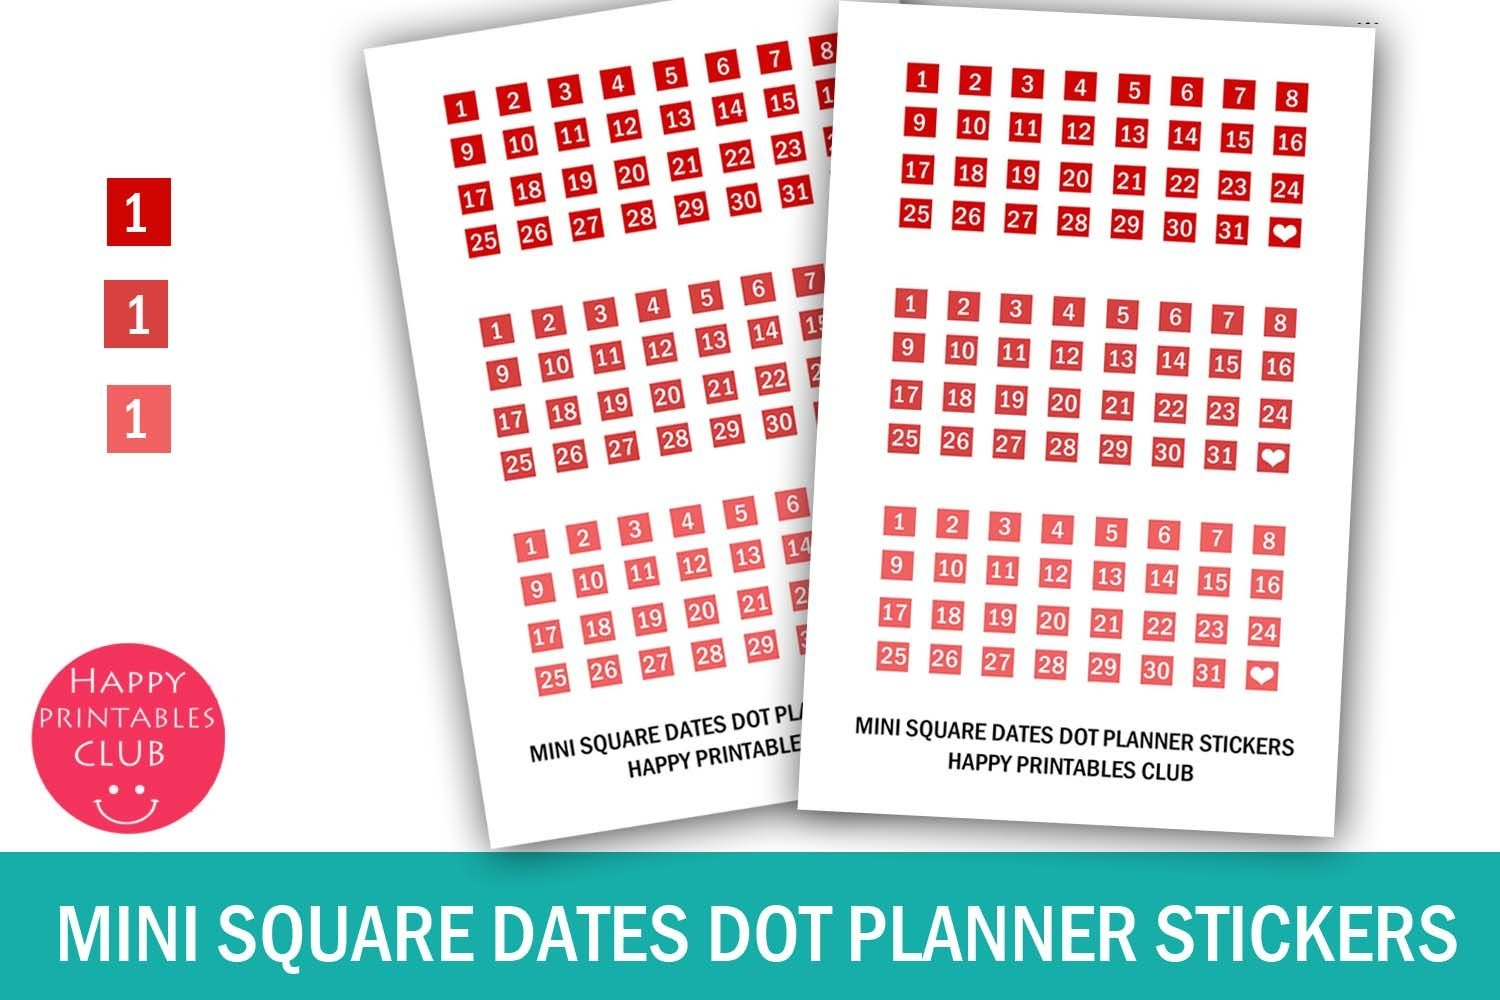 Mini Square Date Sticker-Calendar Number